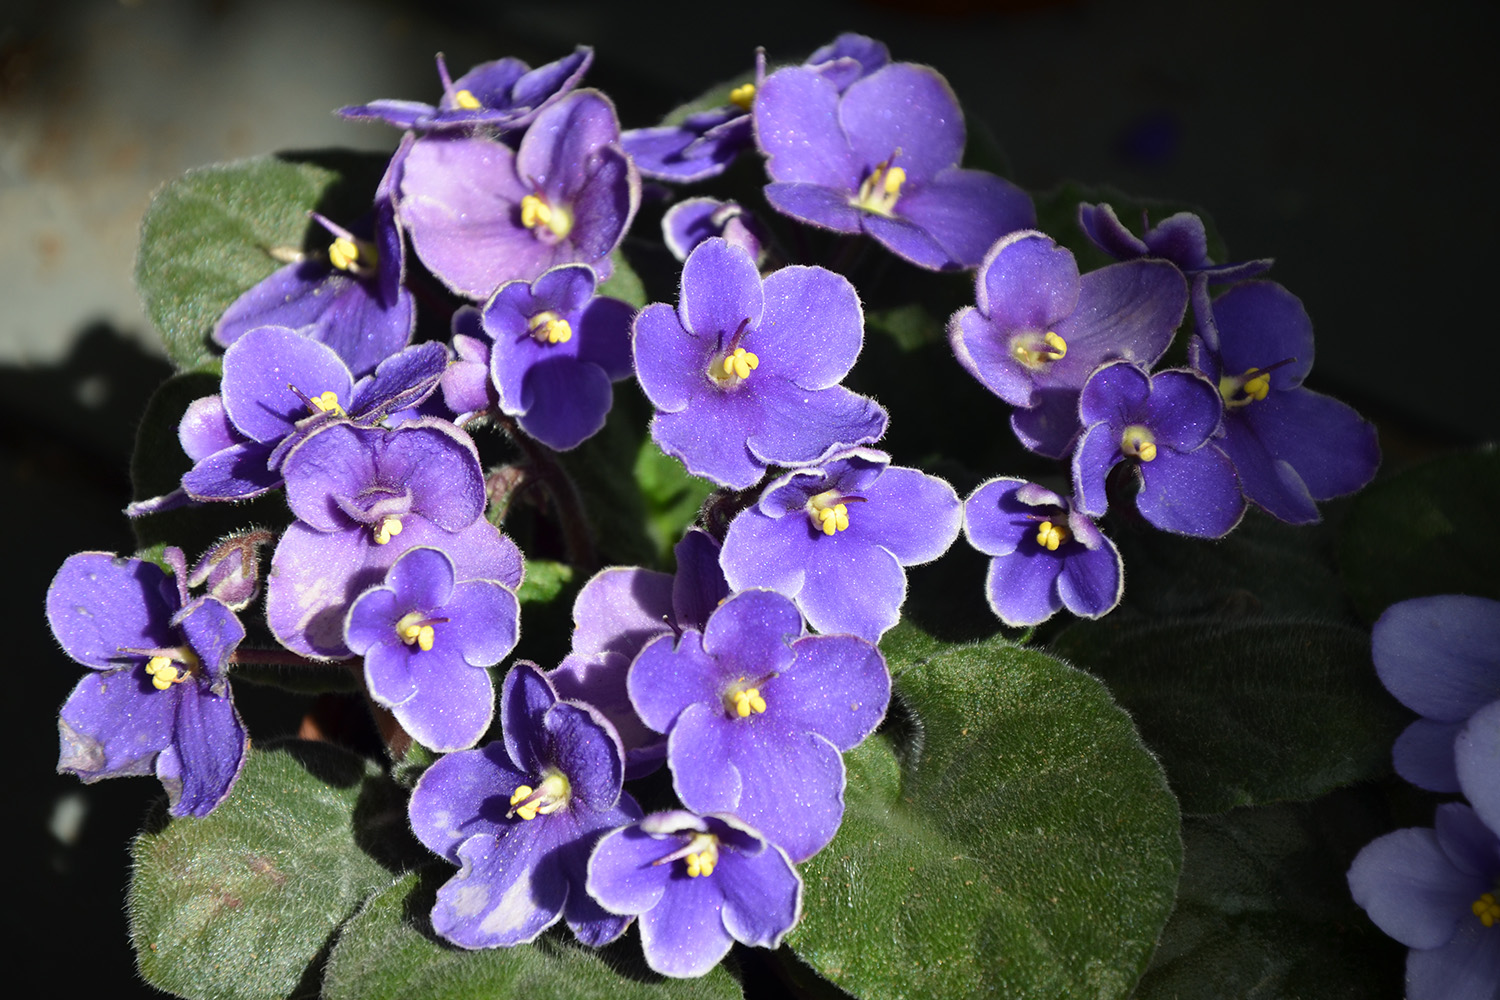 African Violet - Flowering Houseplants for Sale - Patuxent Nursery